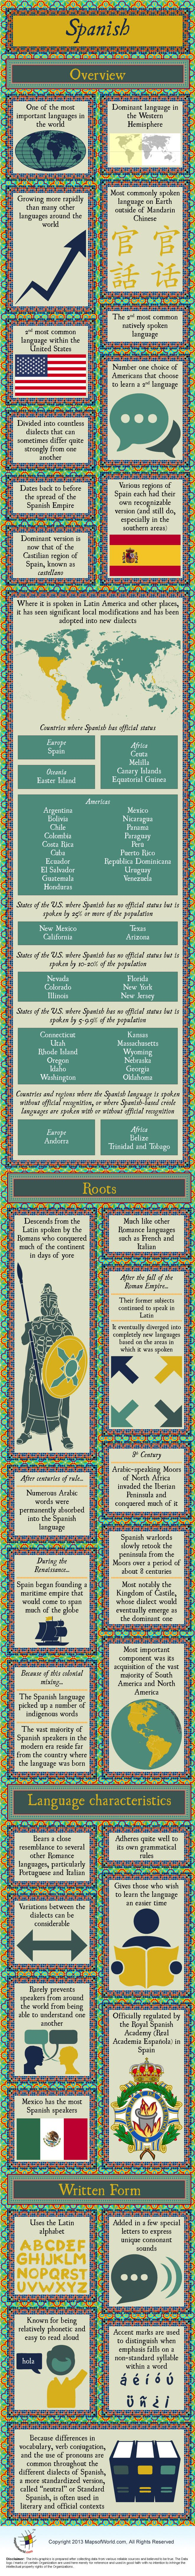 Infographic of Spanish Language